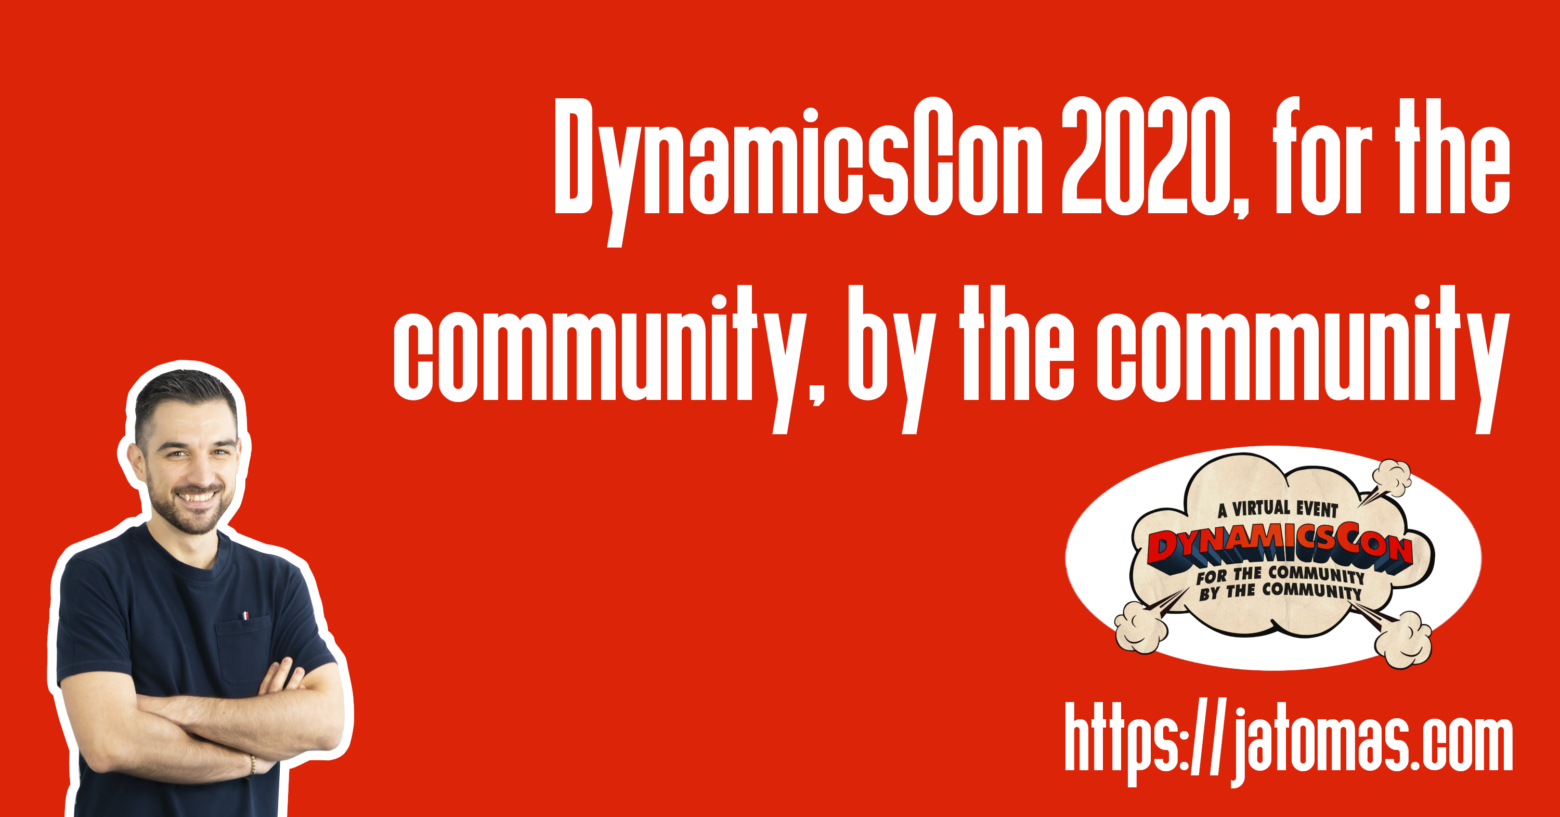 DynamicsCon 2020, for the communiy, by the community